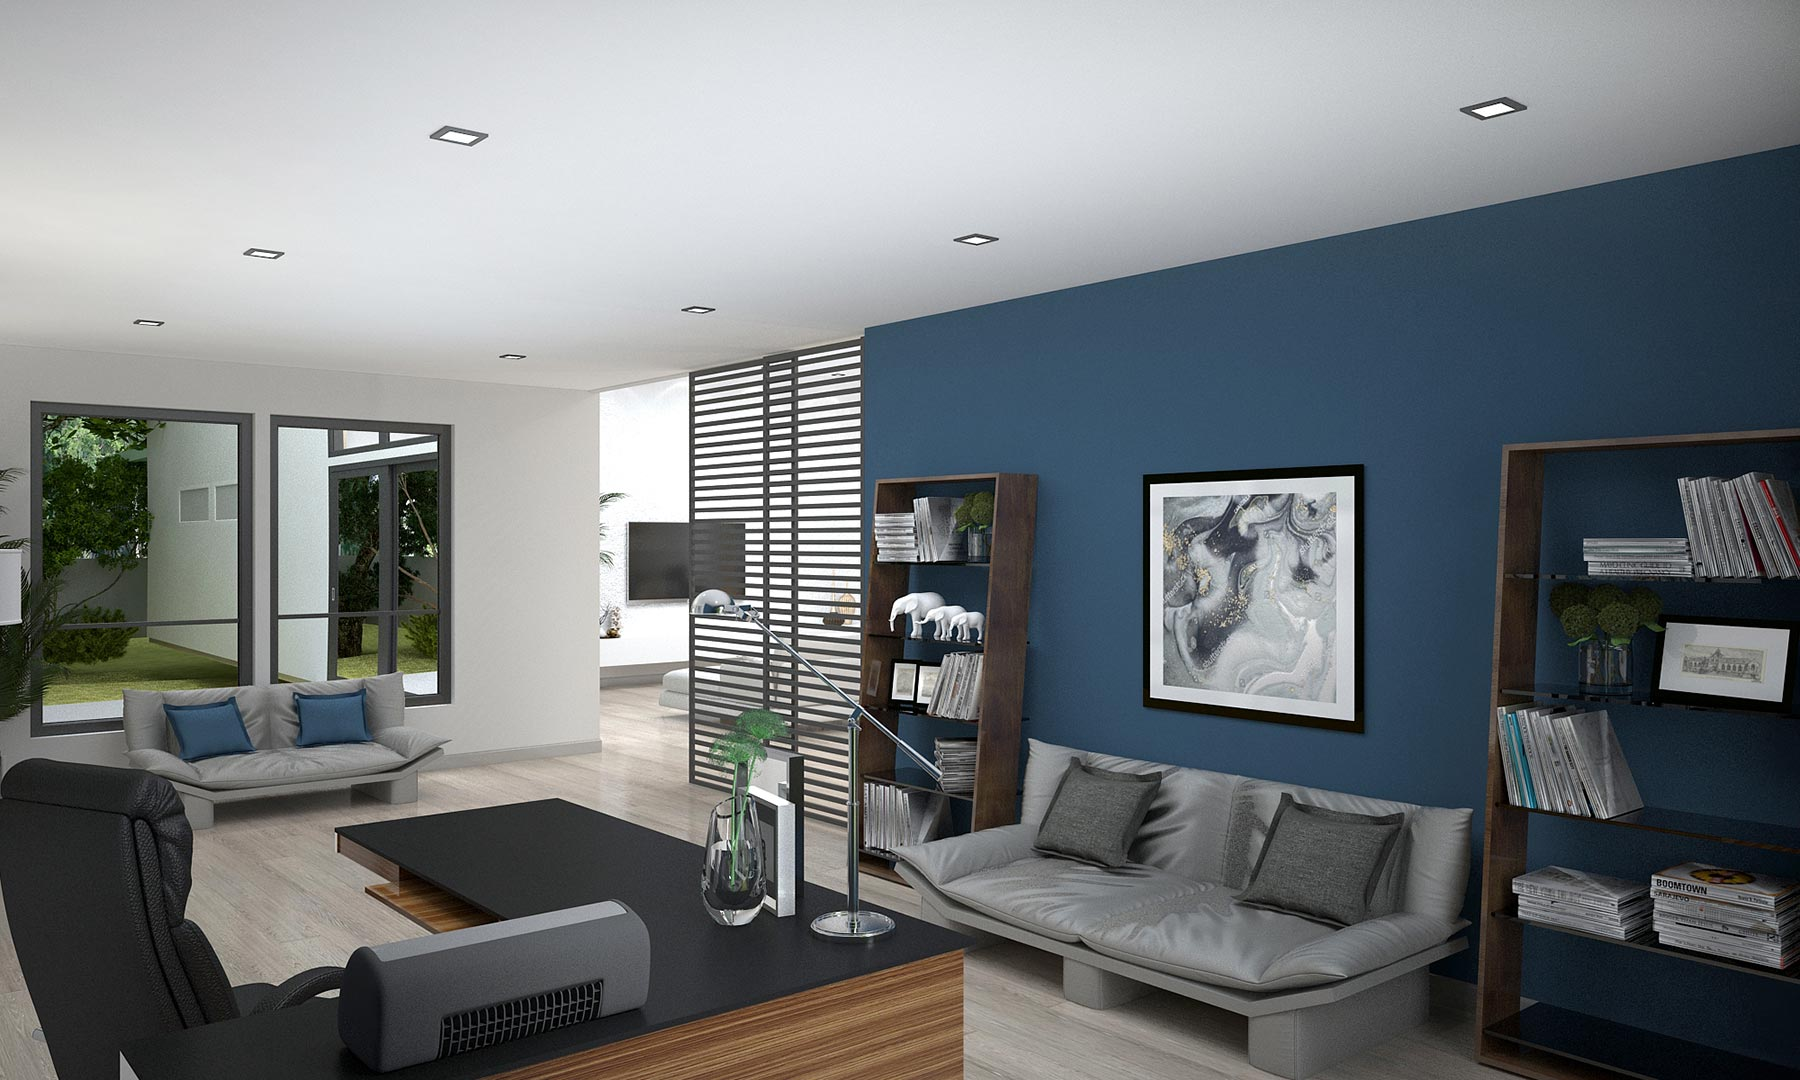 Interior Design packages help make the most of your purchases.